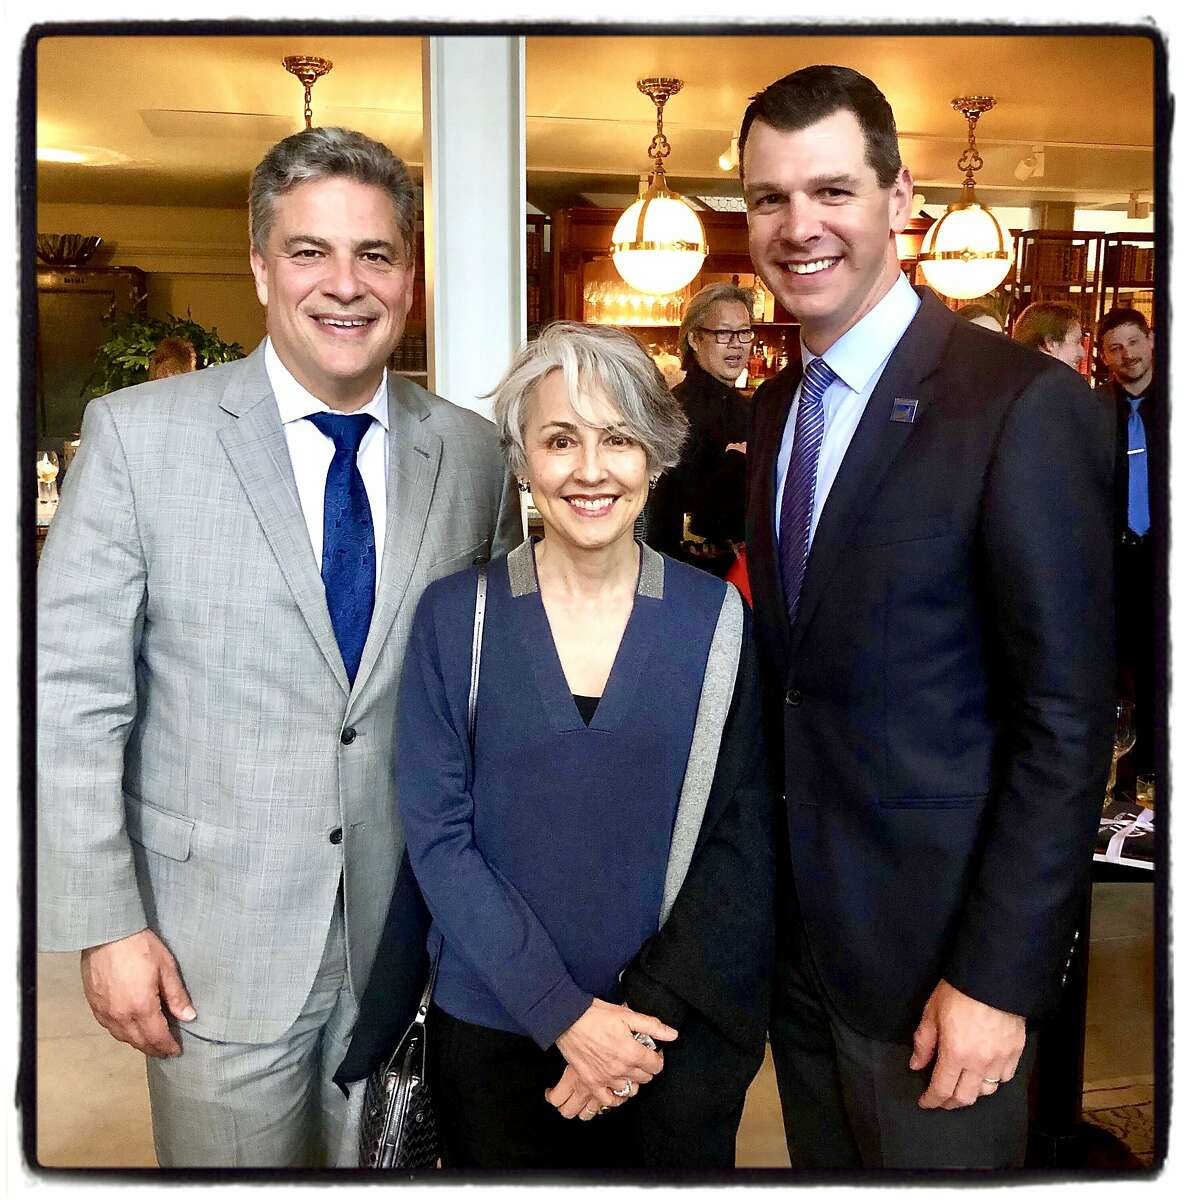 SF Conservatory of Music President David Stull (left) with SF Symphony President Sako Fisher and SF Symphony CEO Mark Hanson. May 14, 2019.